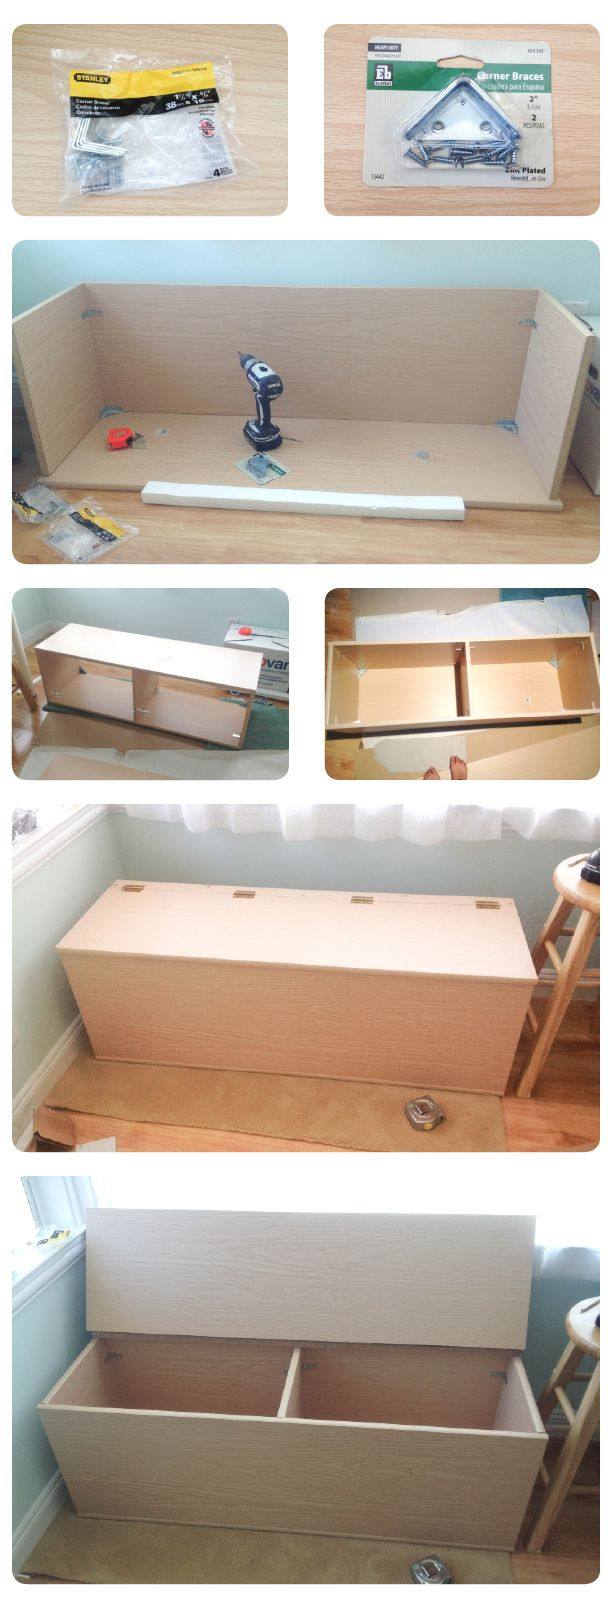 The making of storage bench diy storage bench diy storage and diy storage bench add cushion use bench as seating put bench against wall solutioingenieria Gallery